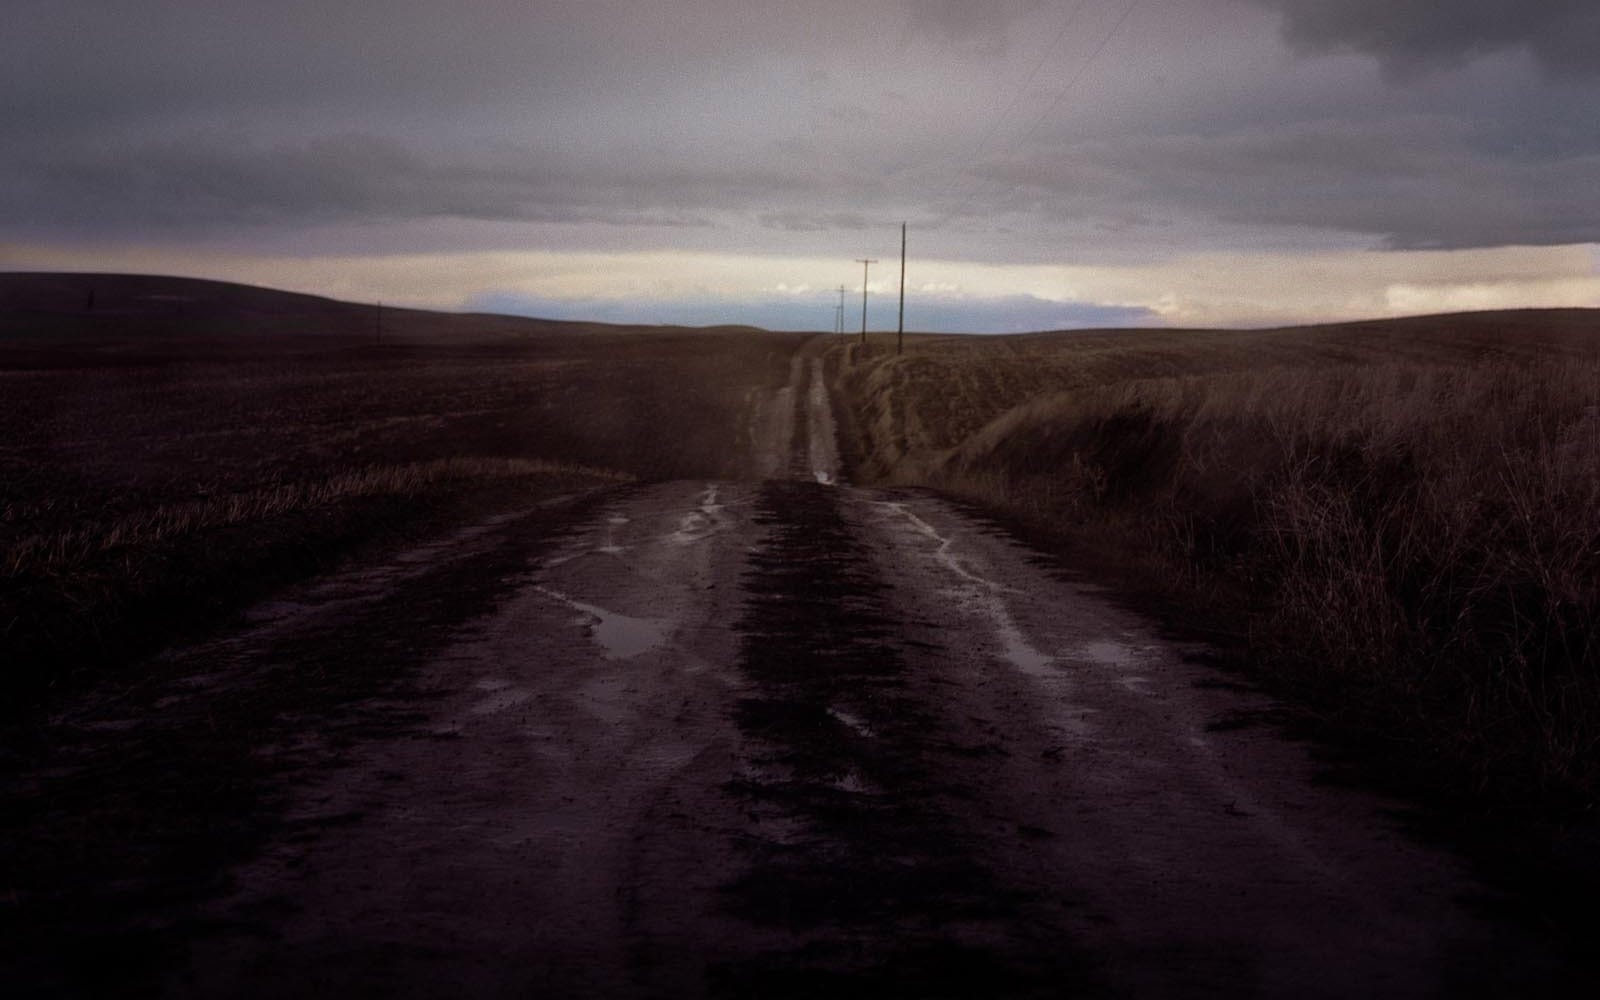 Todd Hido Ghost On A Highway 52 Insights